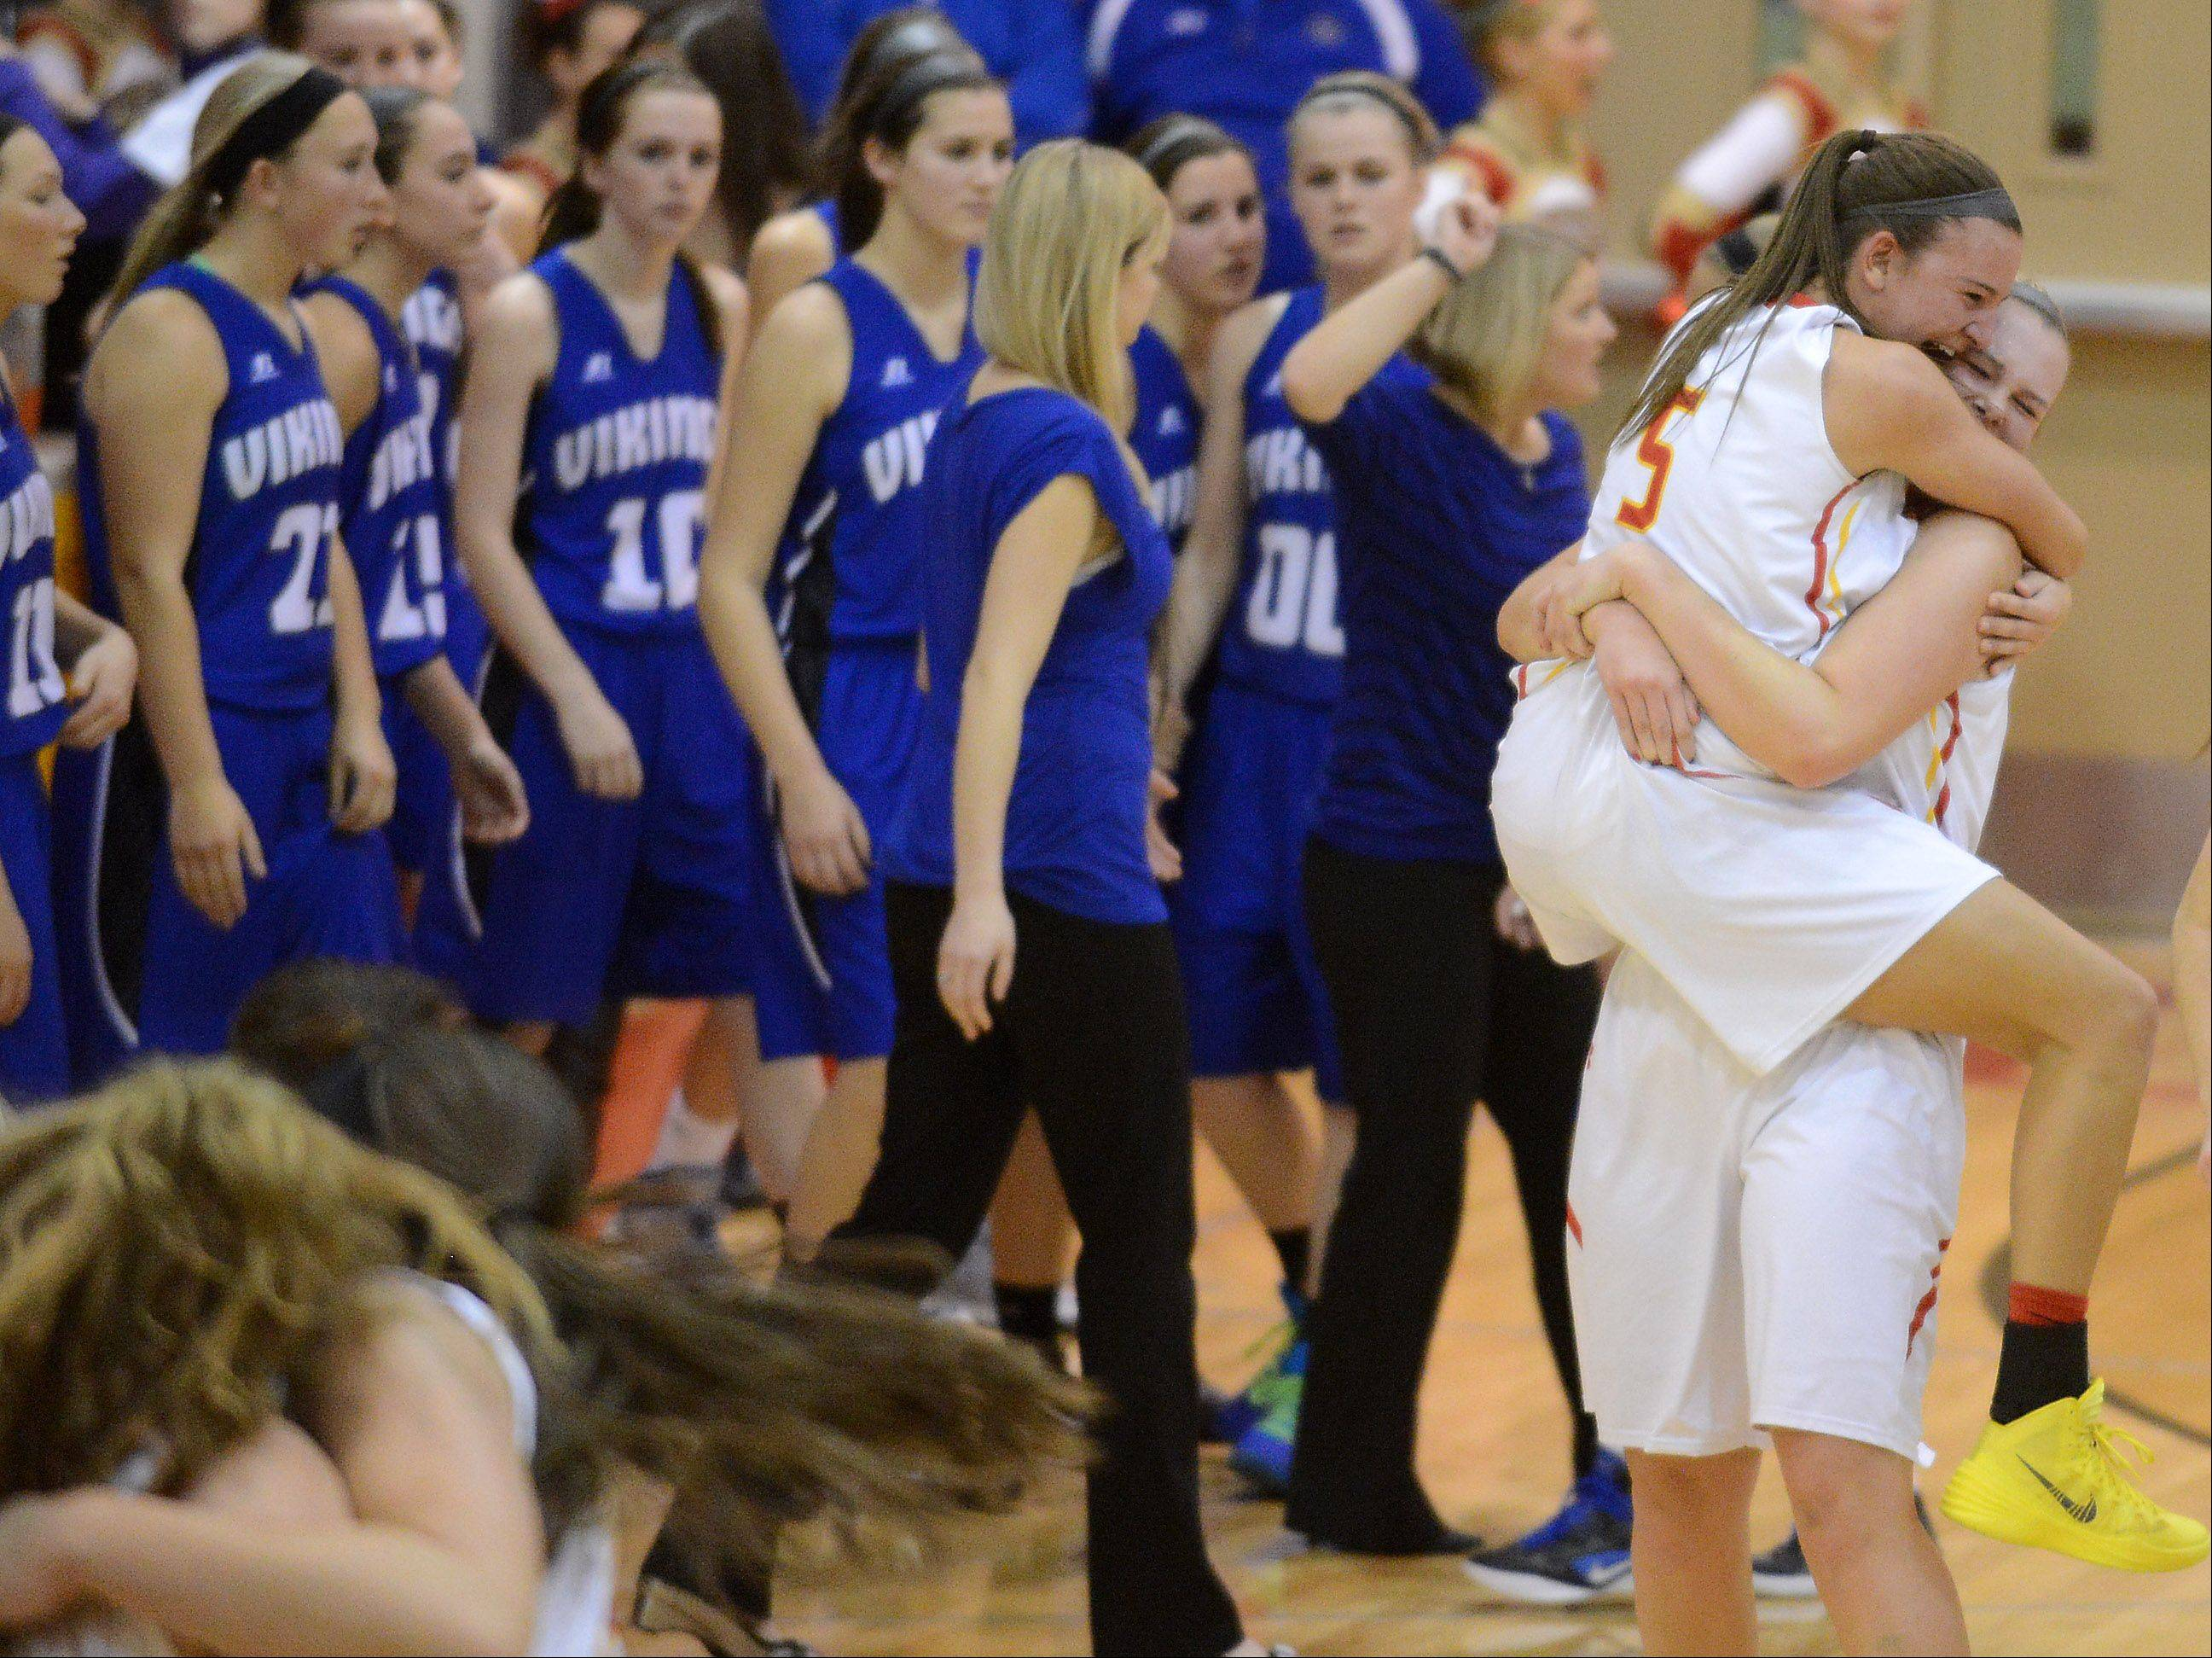 Batavia's Liza Fruendt jumps in to the arms of teammate Erin Bayram after a victory over Geneva.